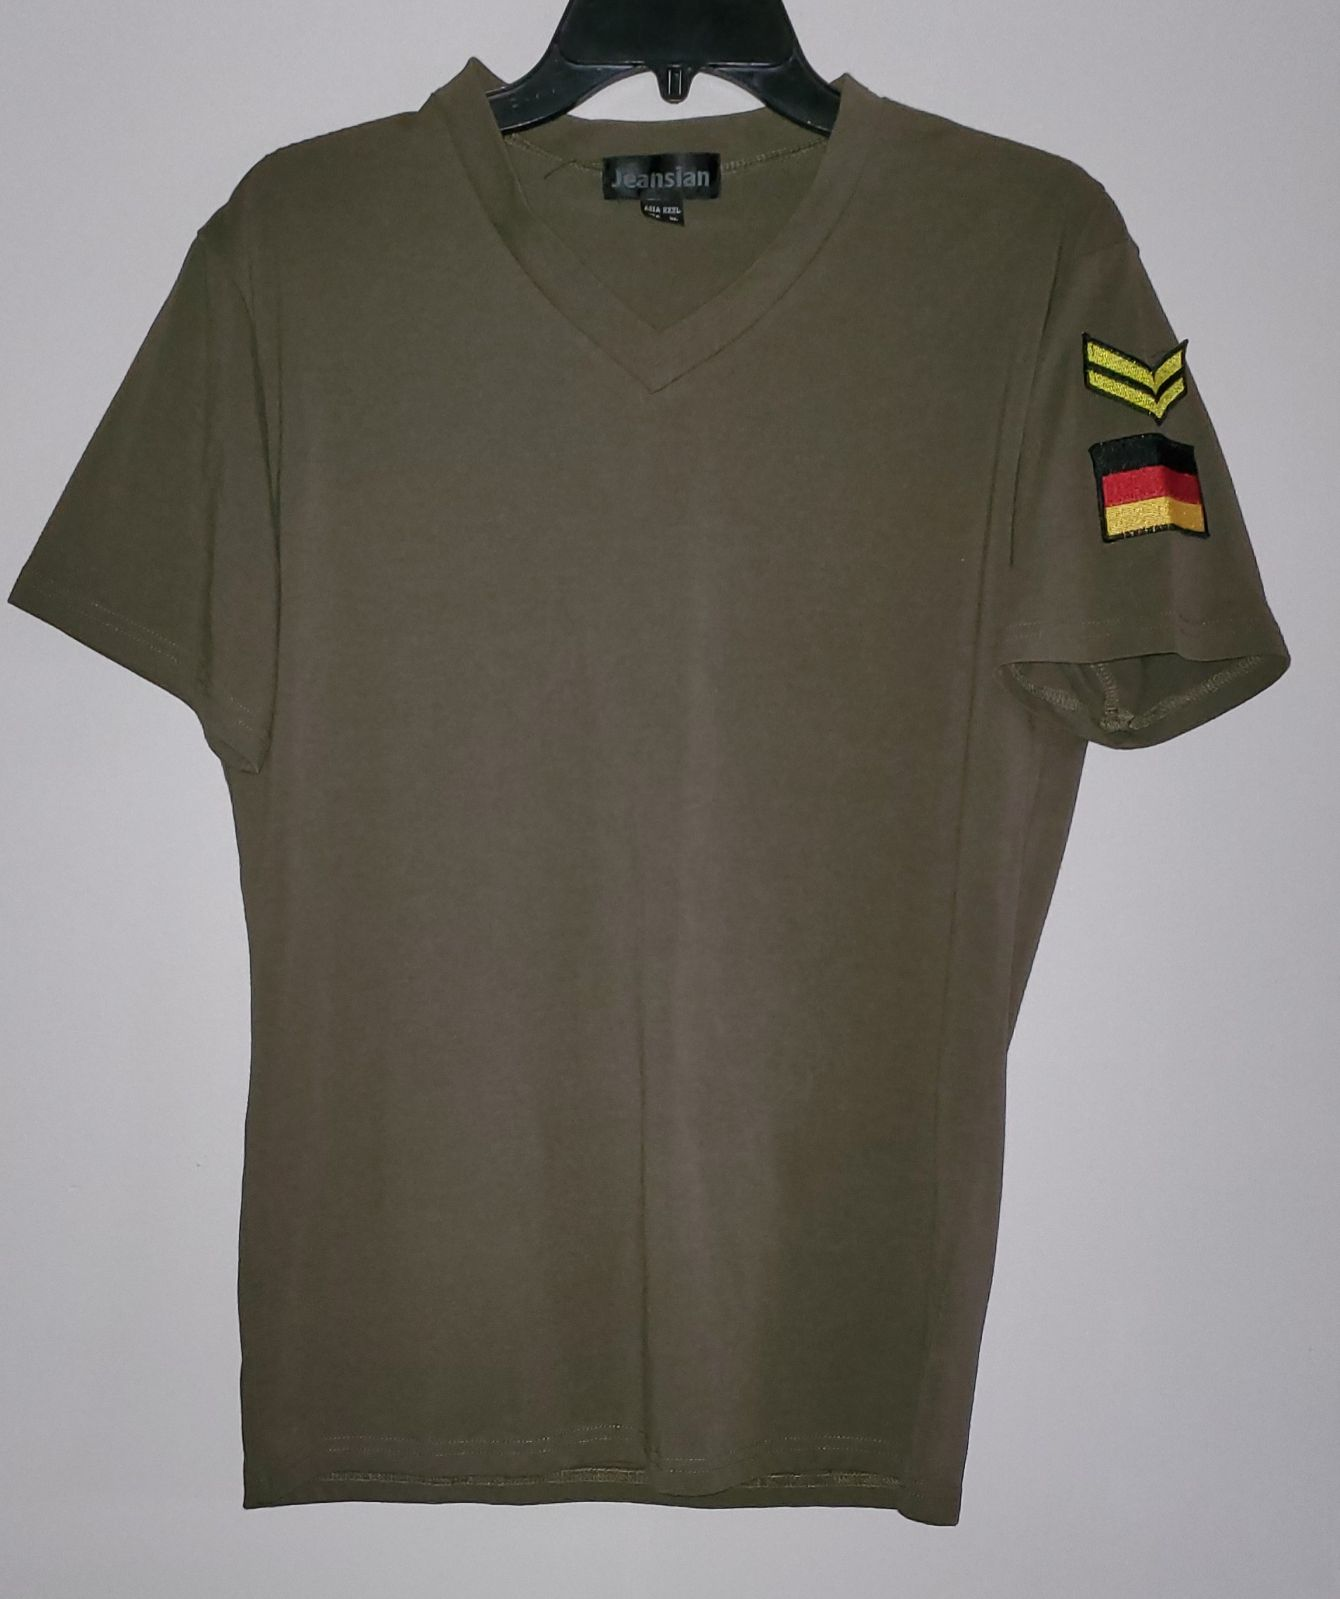 Army Green Jeansian T Shirt